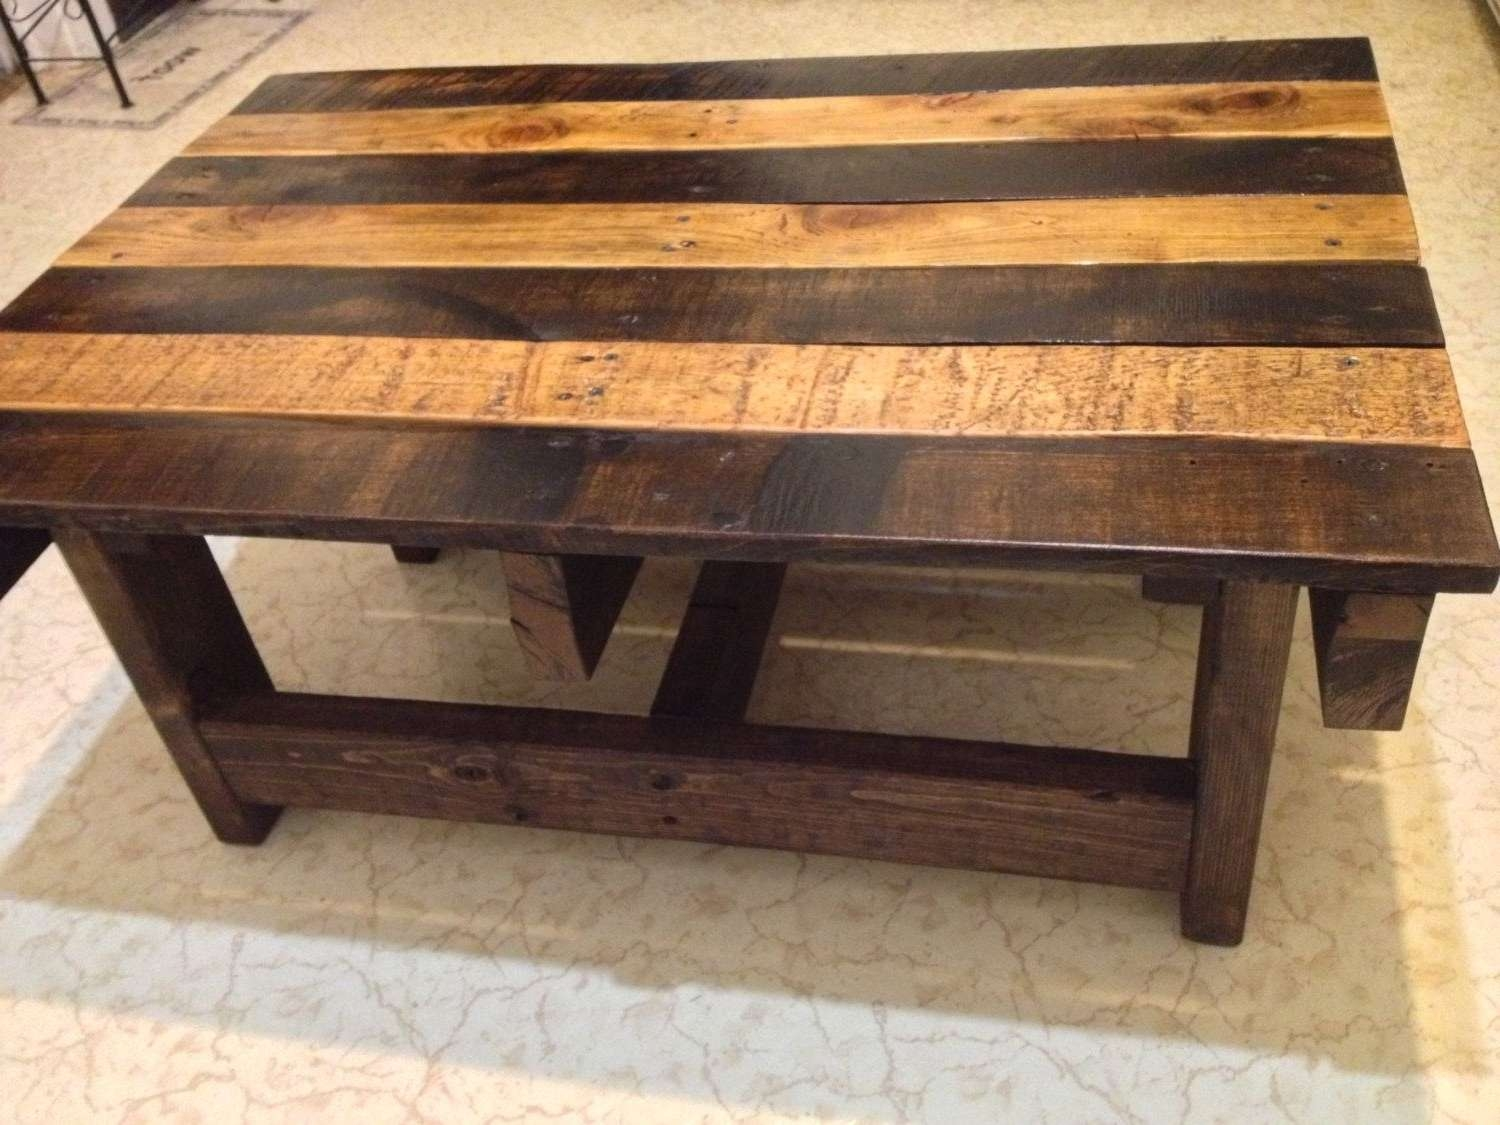 Hand Crafted Handmade Reclaimed Rustic Pallet Wood Coffee Table With Most Recently Released Handmade Wooden Coffee Tables (View 12 of 20)